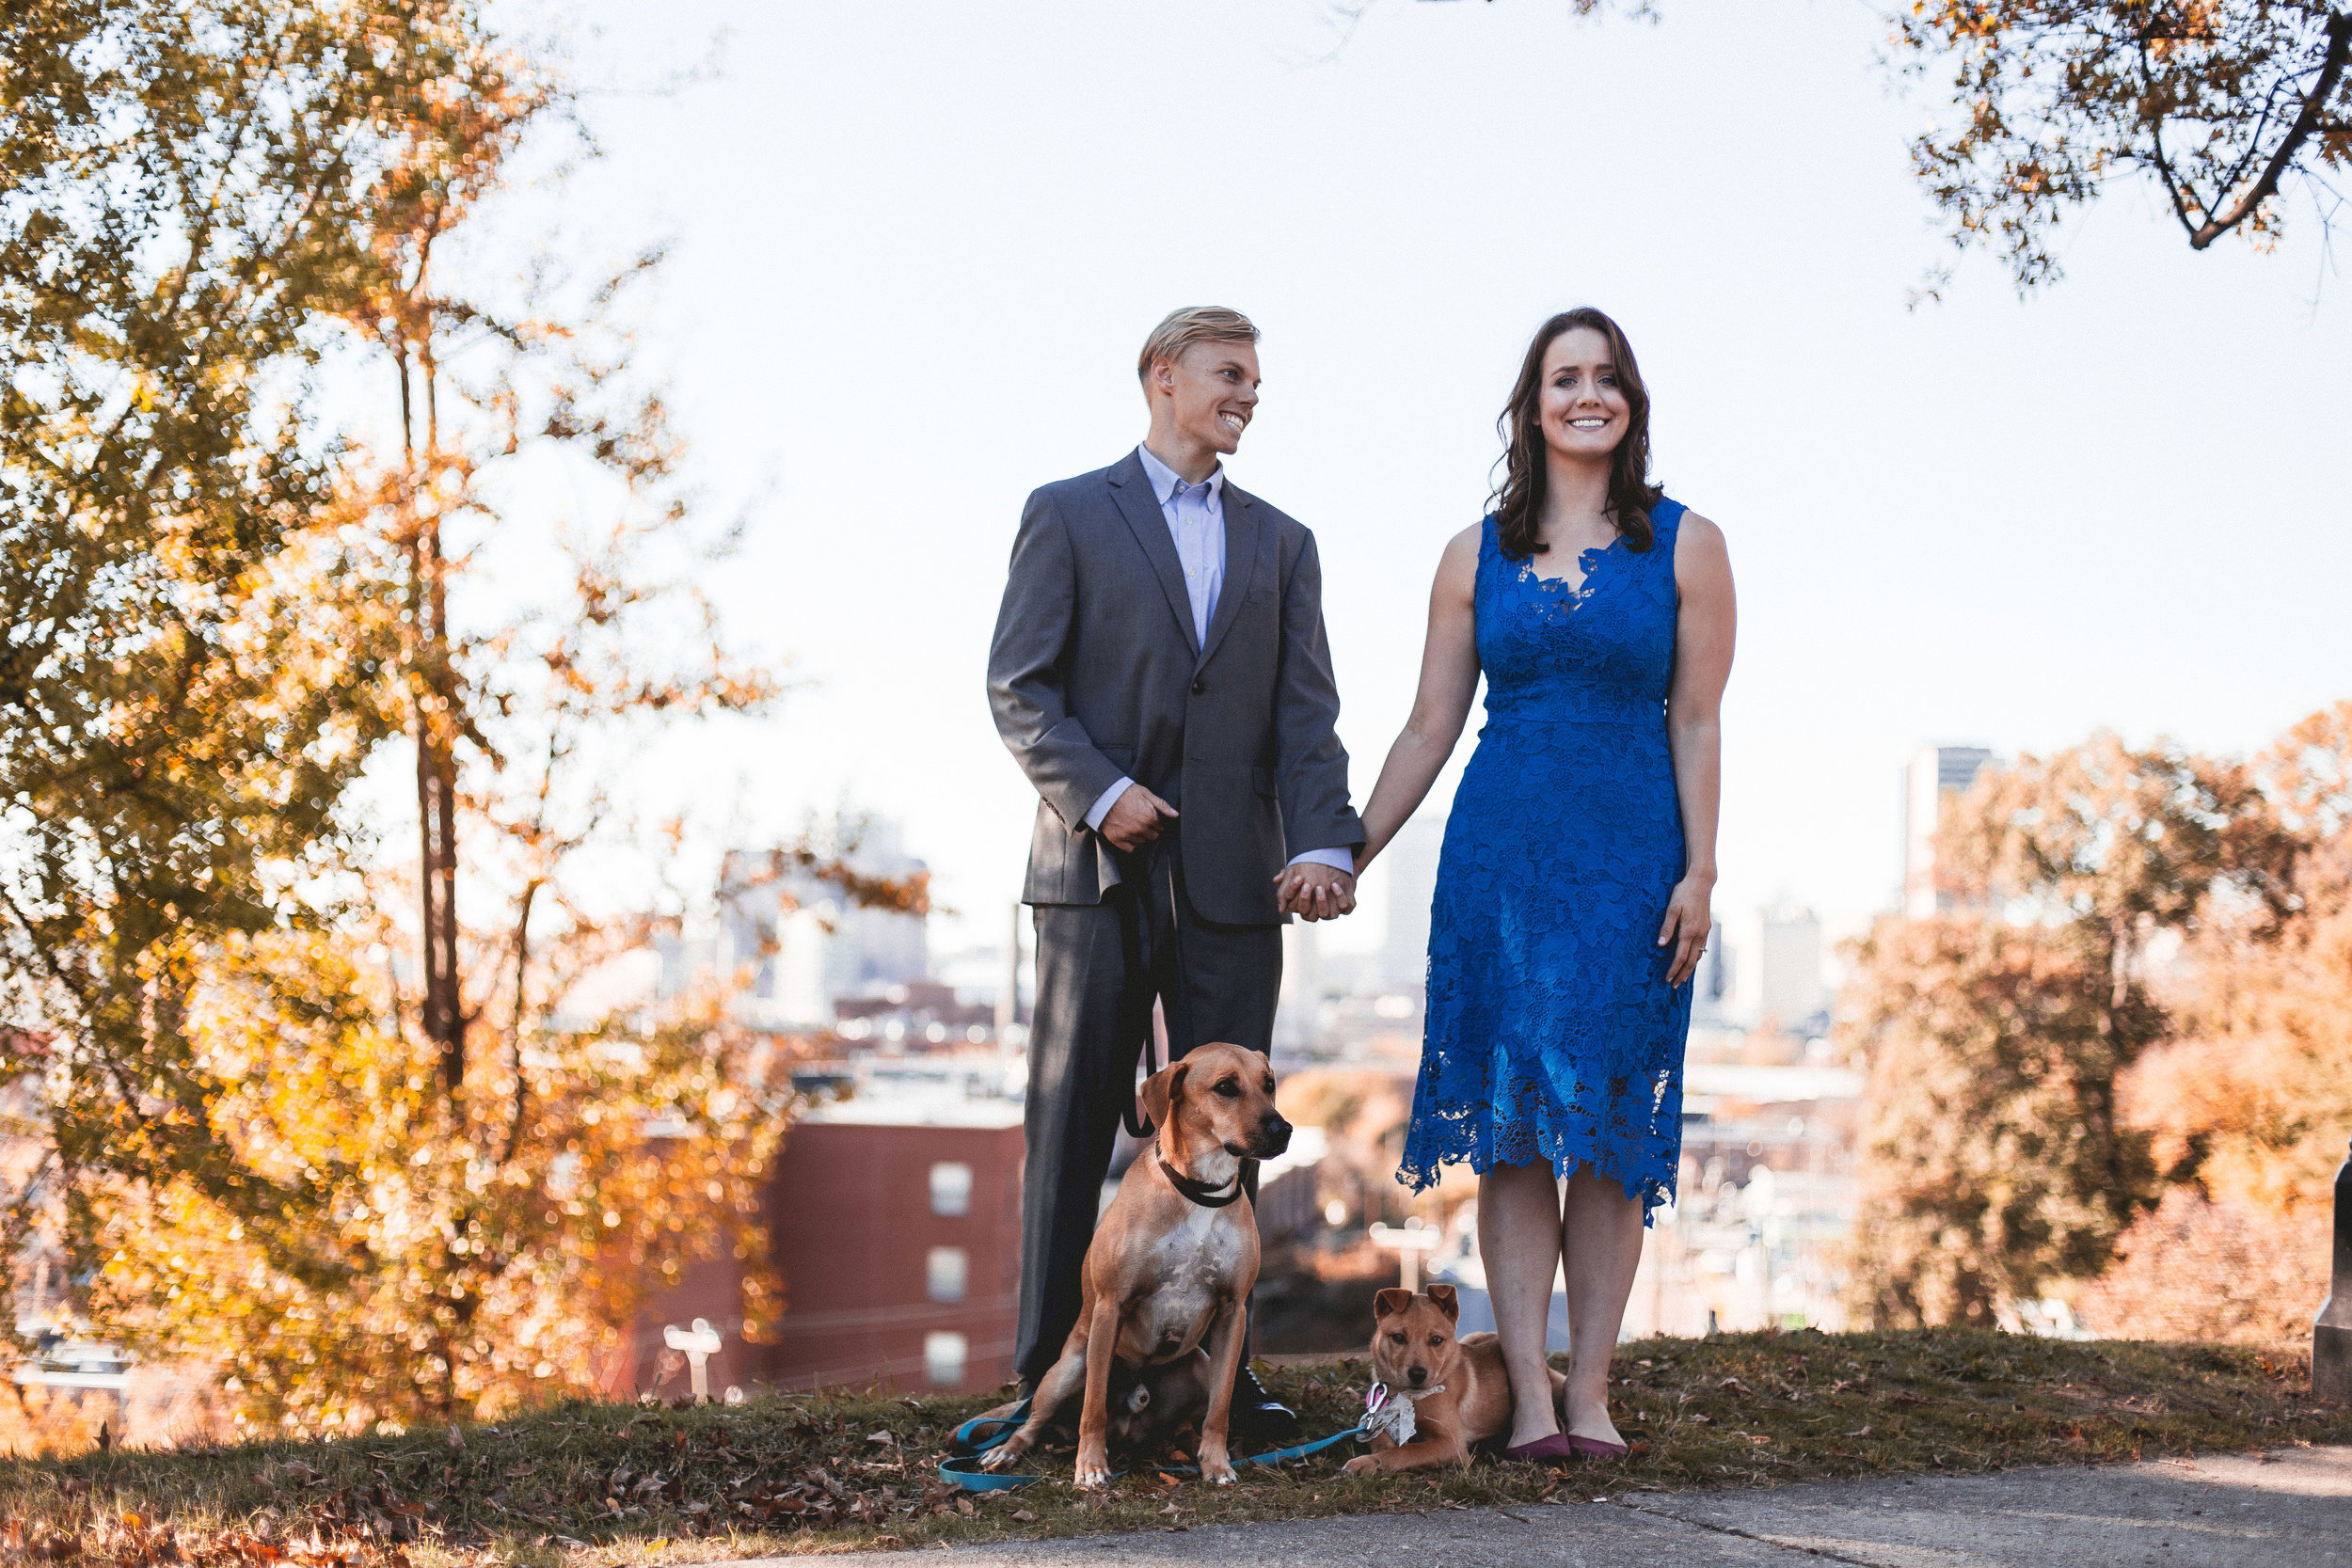 Lindsey & Bert Engagement Shoot 11.5.16-19.jpg